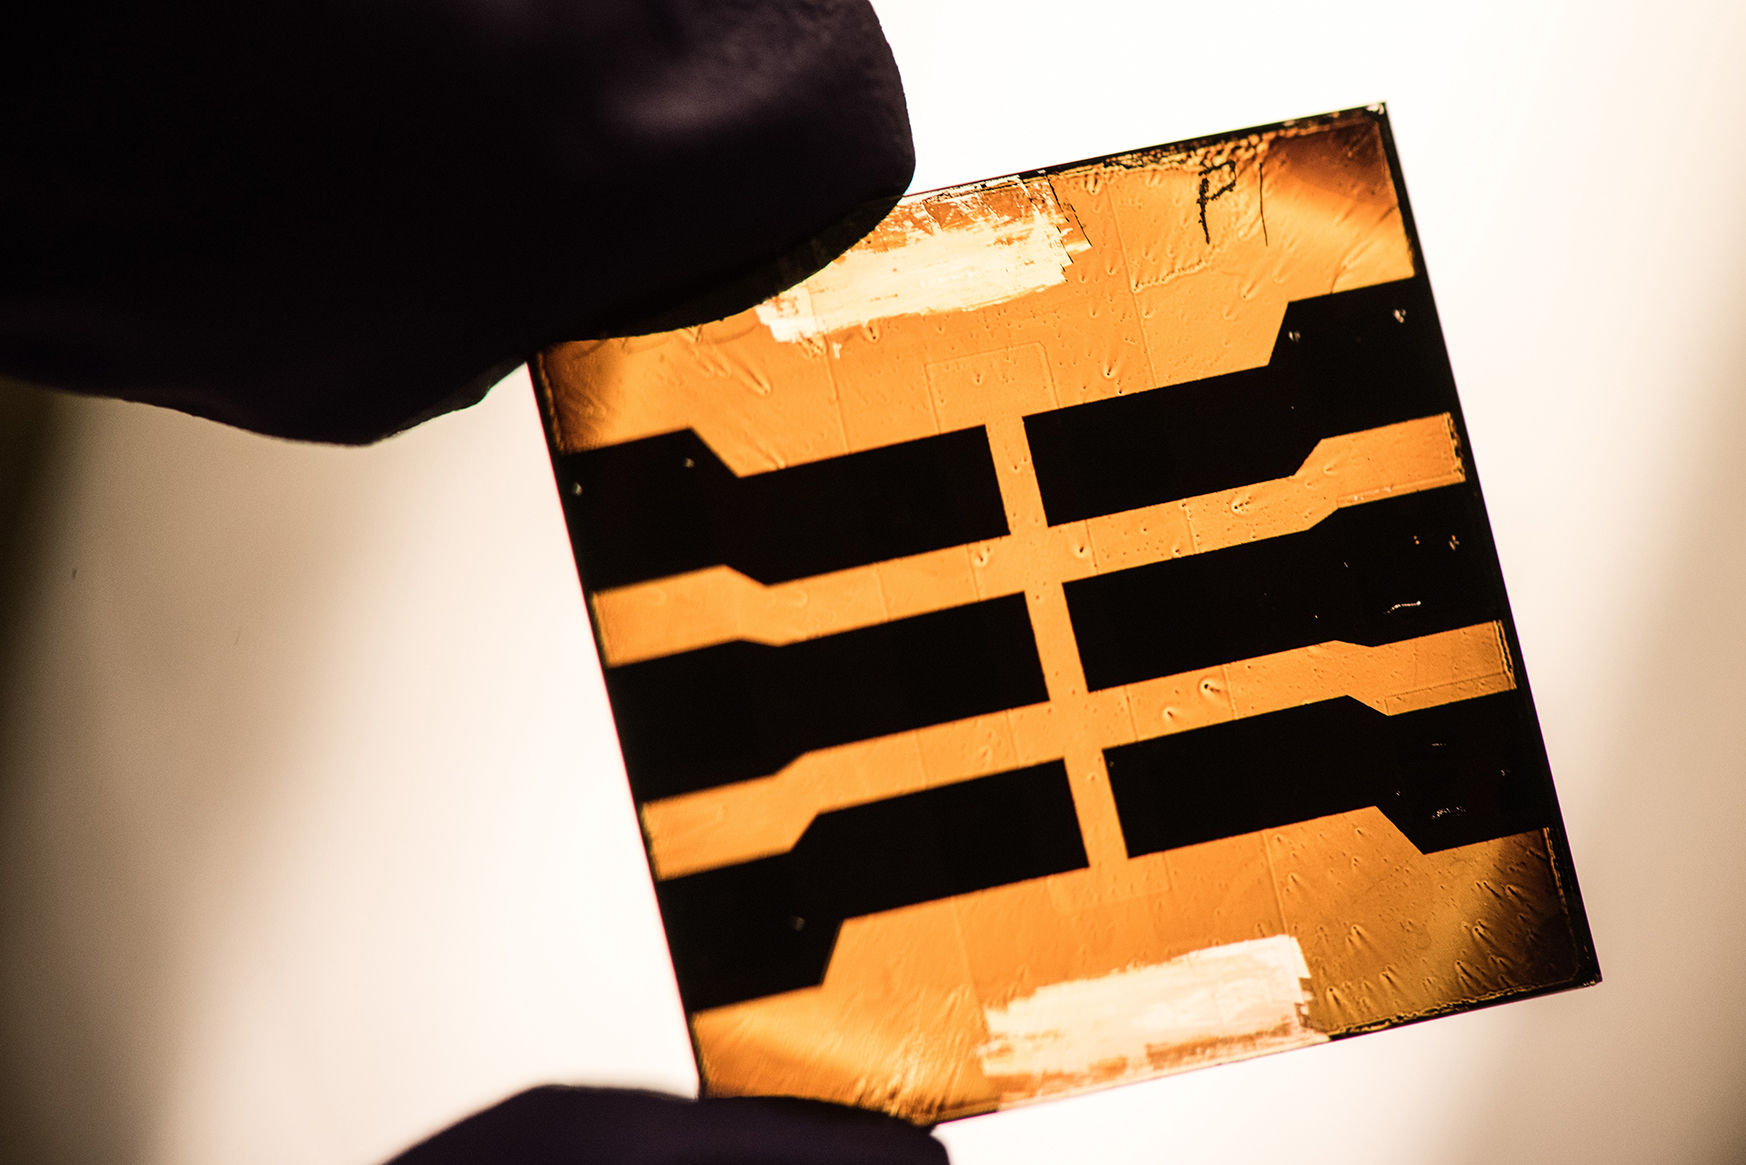 Perovskite Technology Is Scalable But Questions Remain